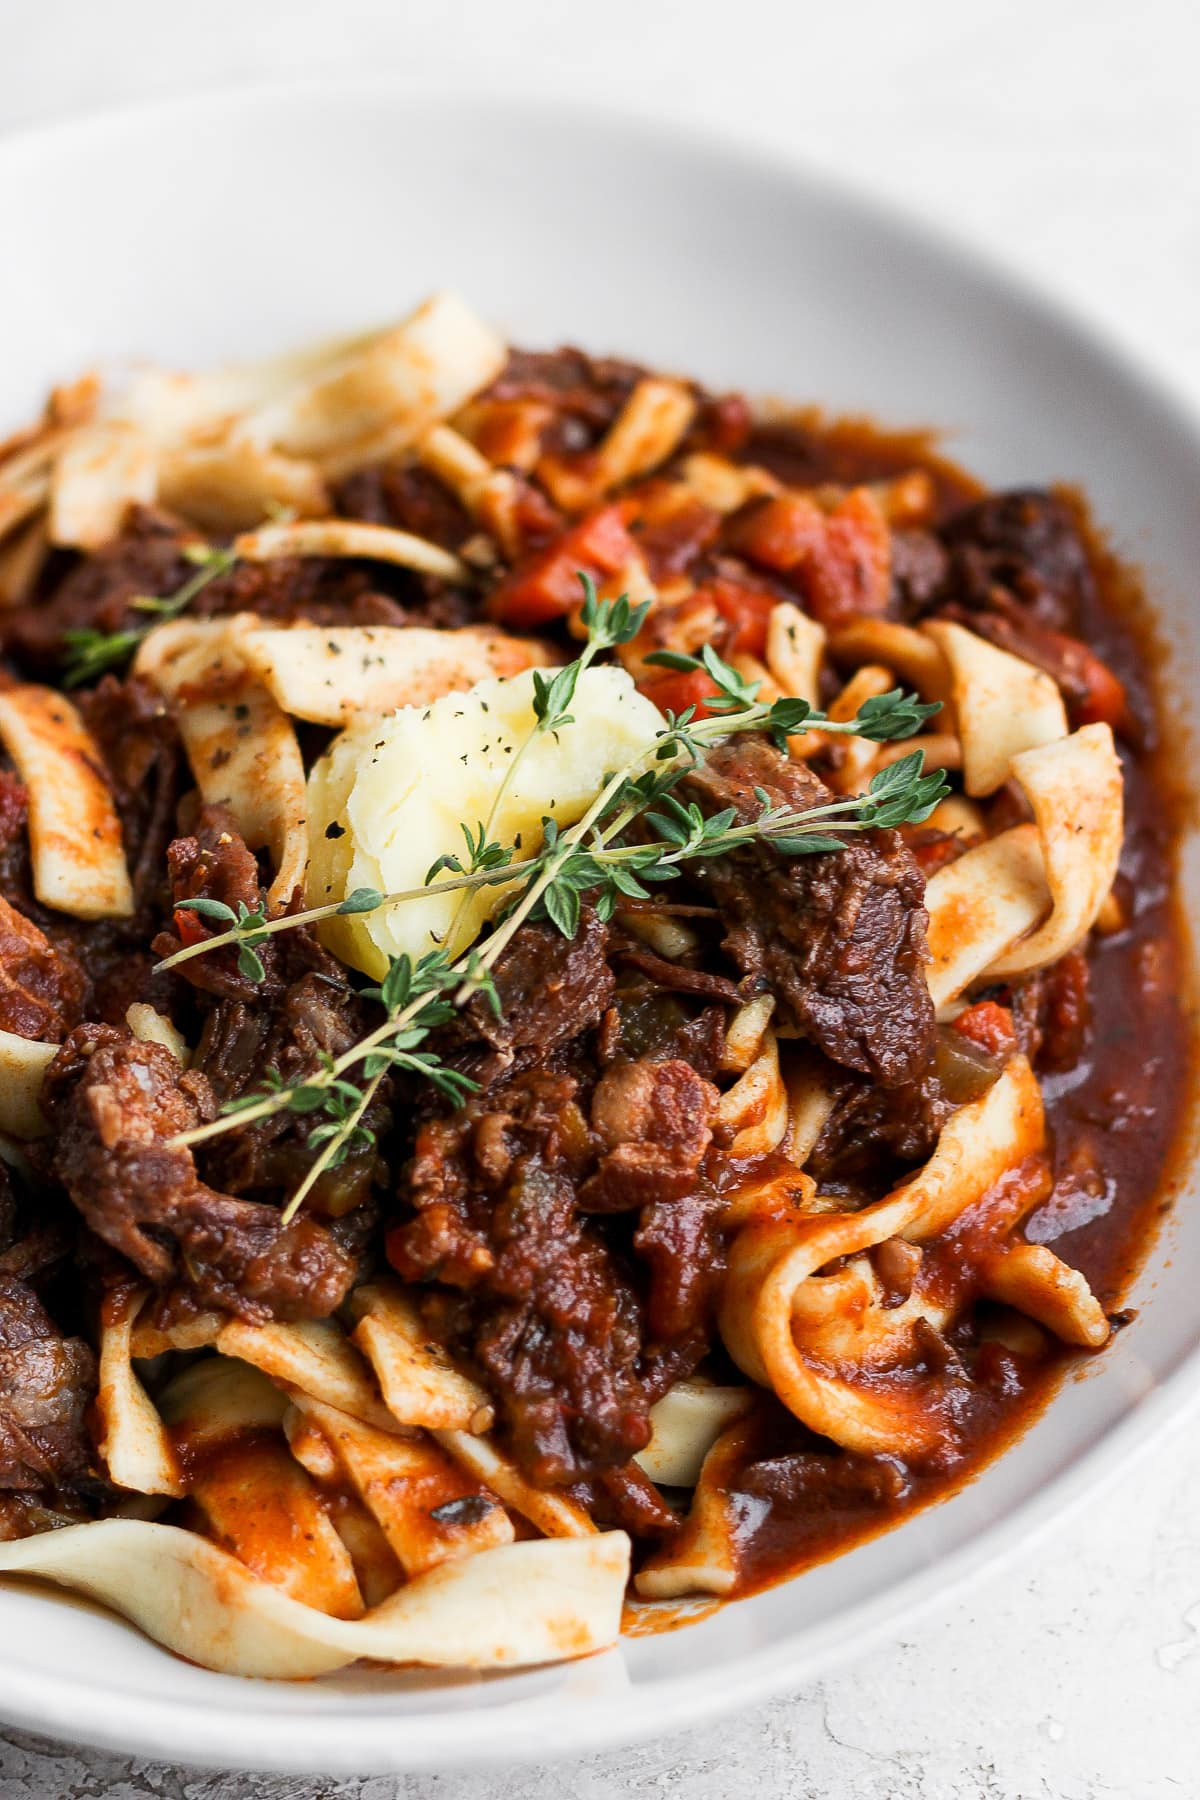 Bowl of beef ragu with pasta.